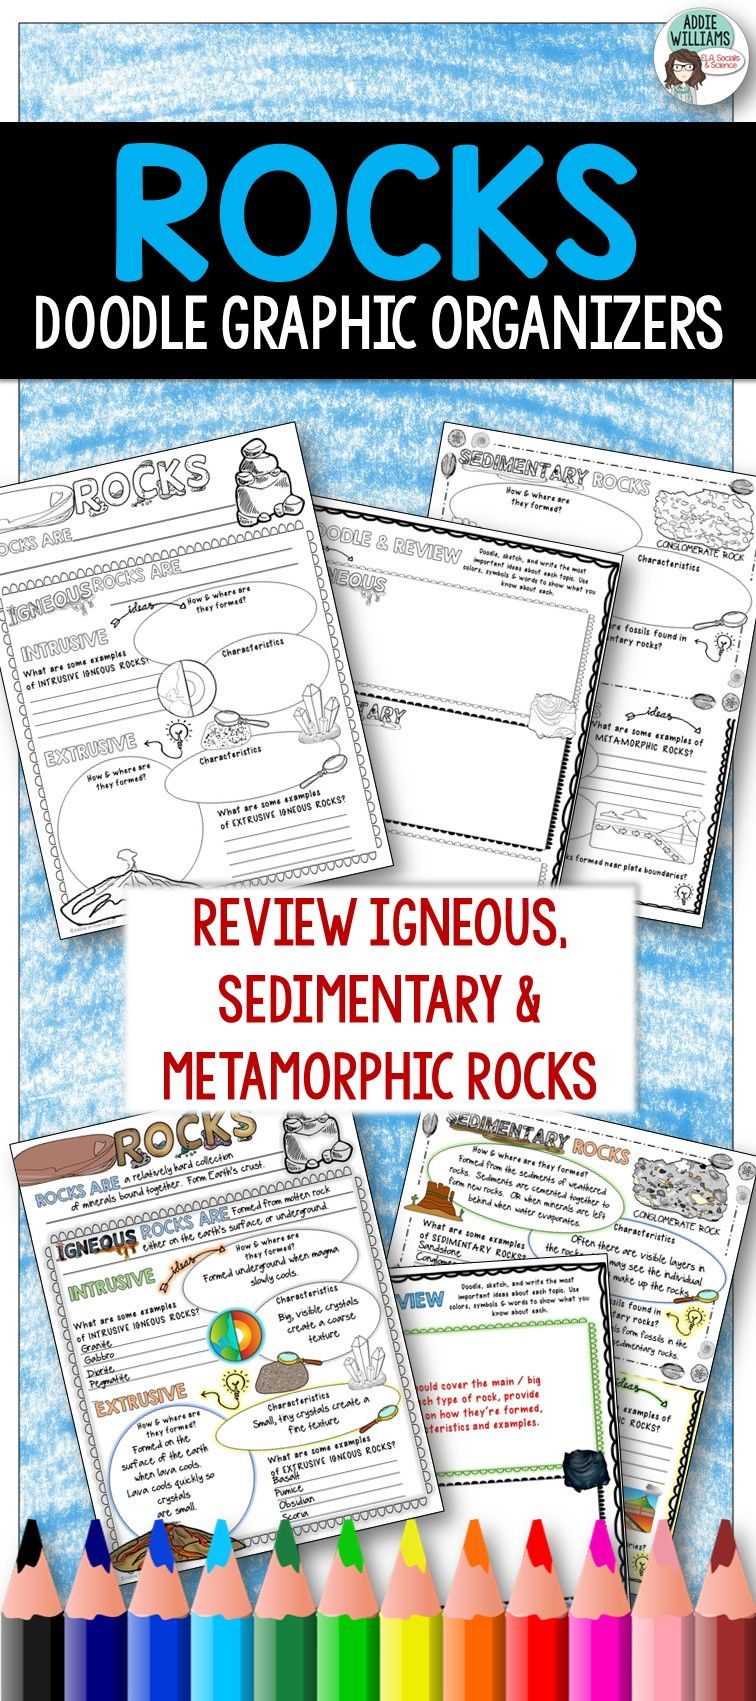 Doodle Notes For Rocks A Fun And Creative Way To Review The 3 Types Of Rocks Answer Keys Included Doodle Notes Graphic Organizers Lap Book Templates